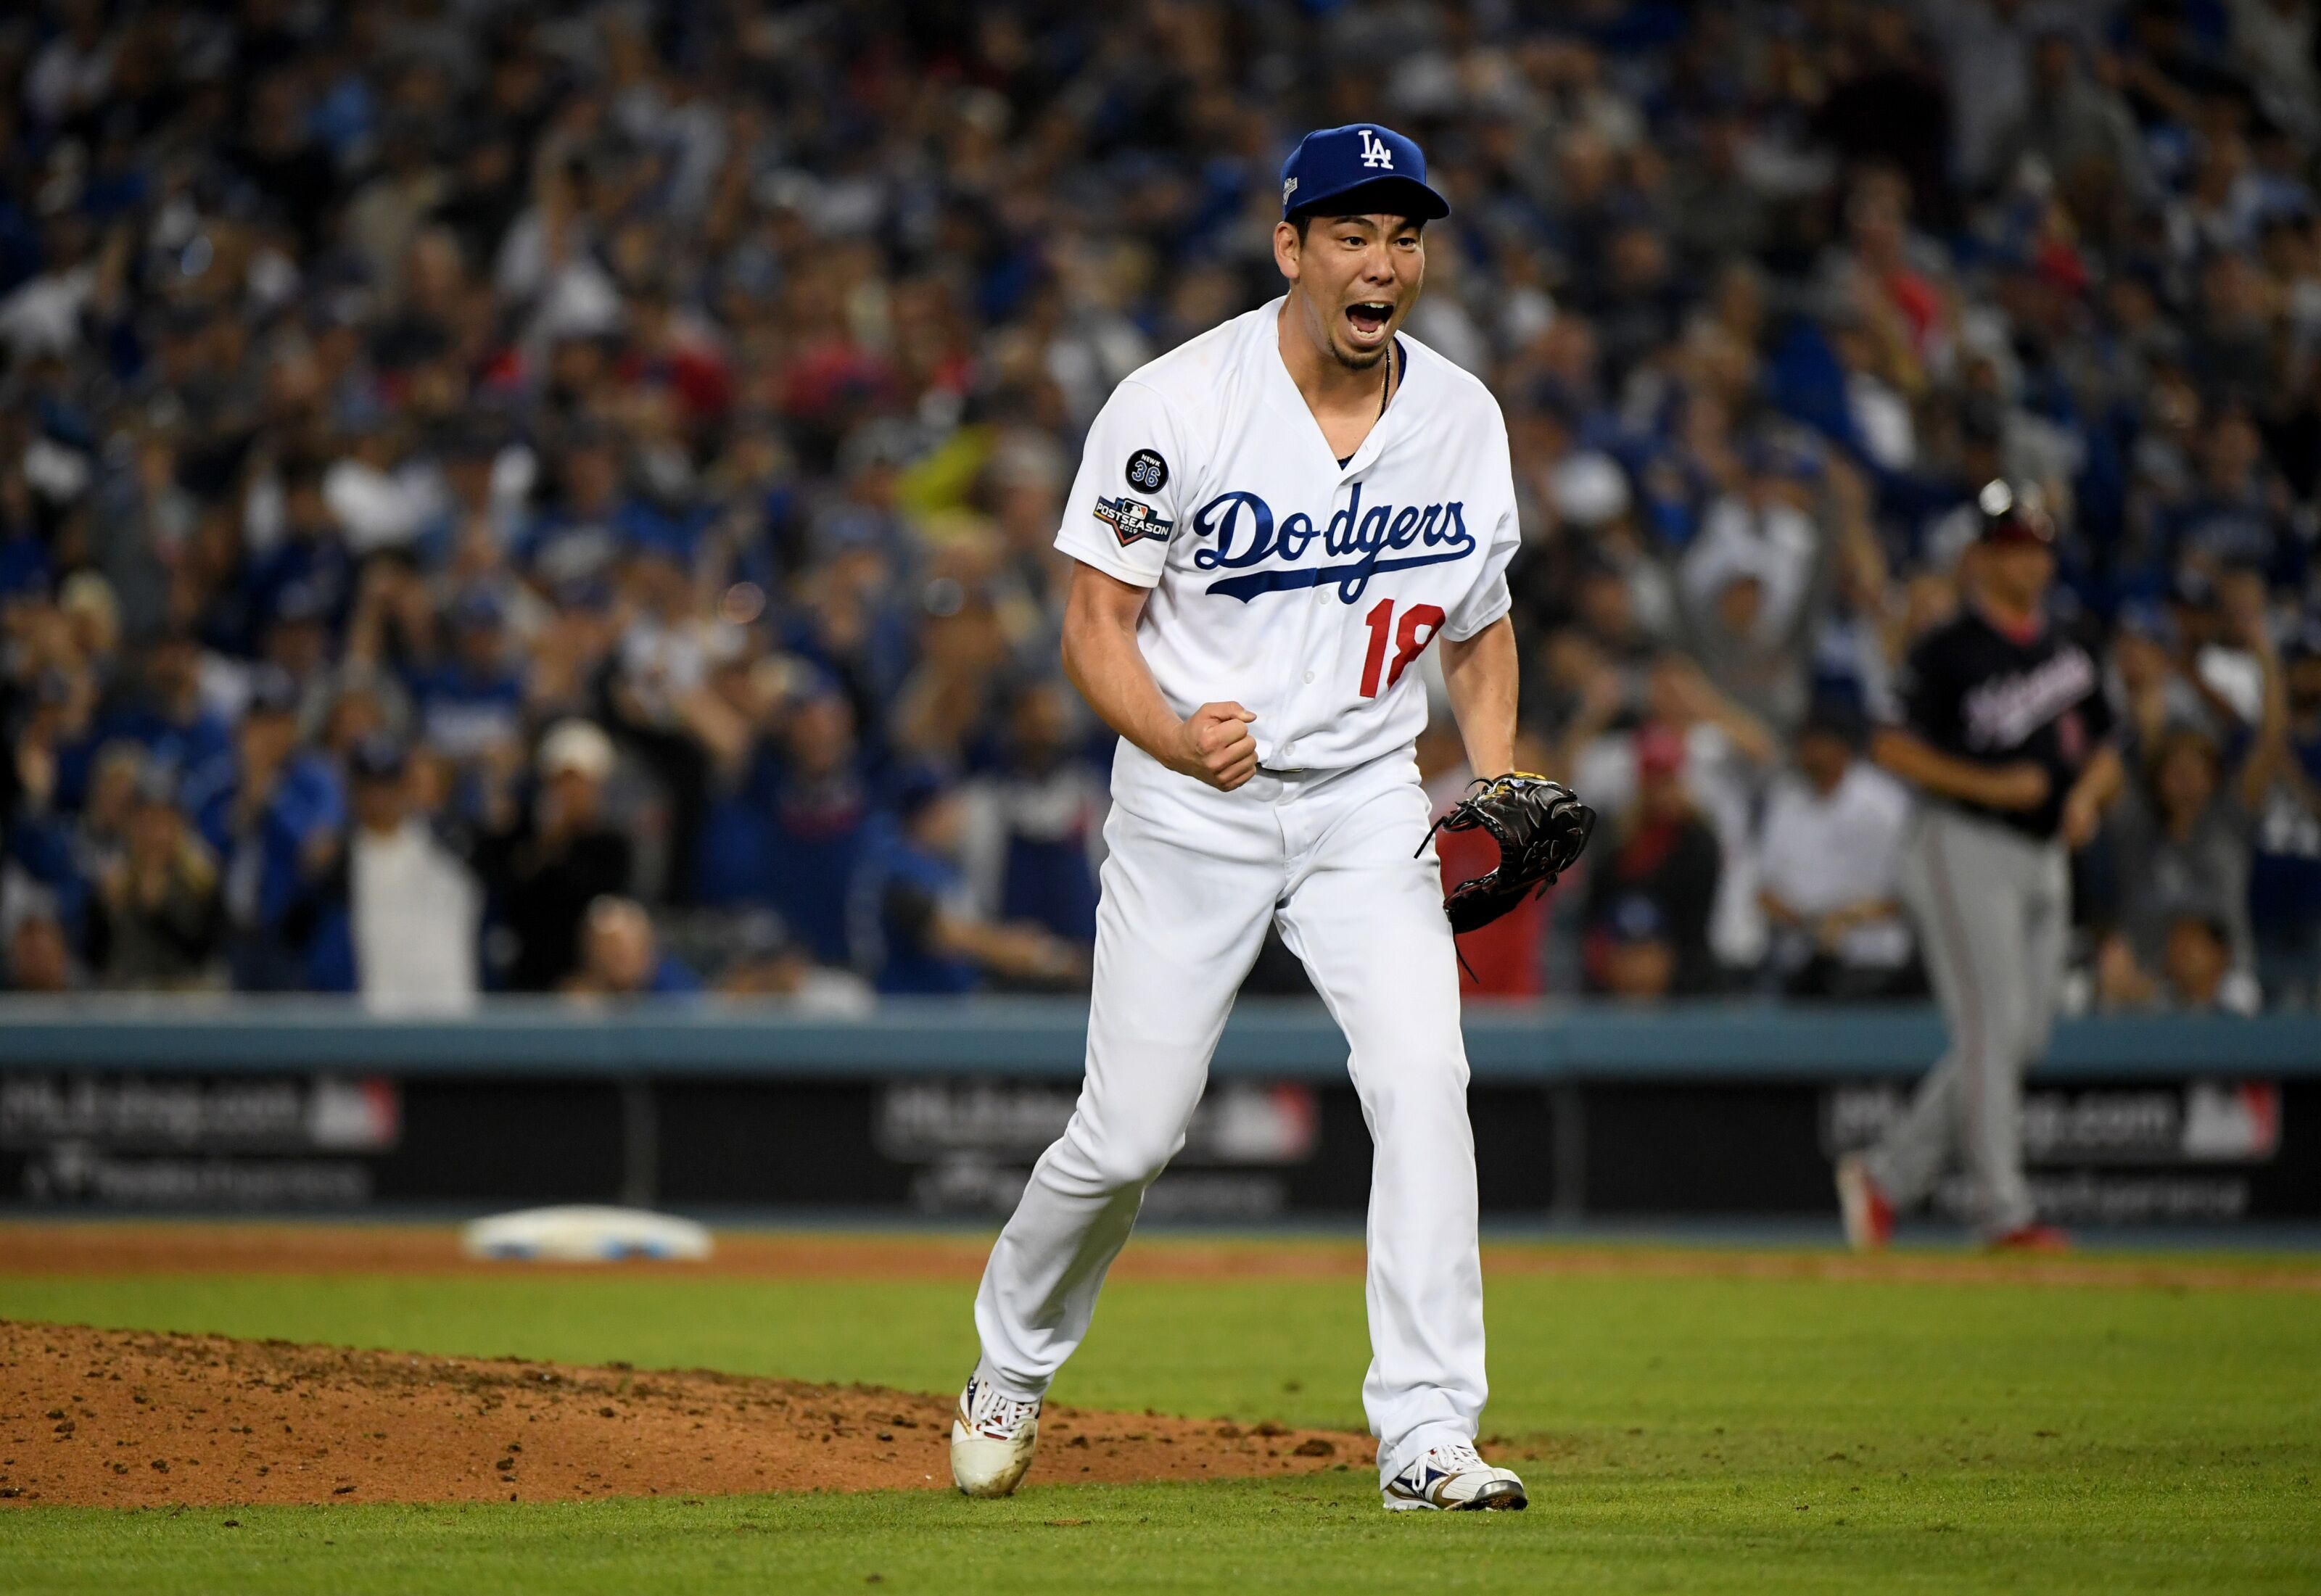 Los Angeles Dodgers: If Kenta Maeda gets traded, a superstar will follow